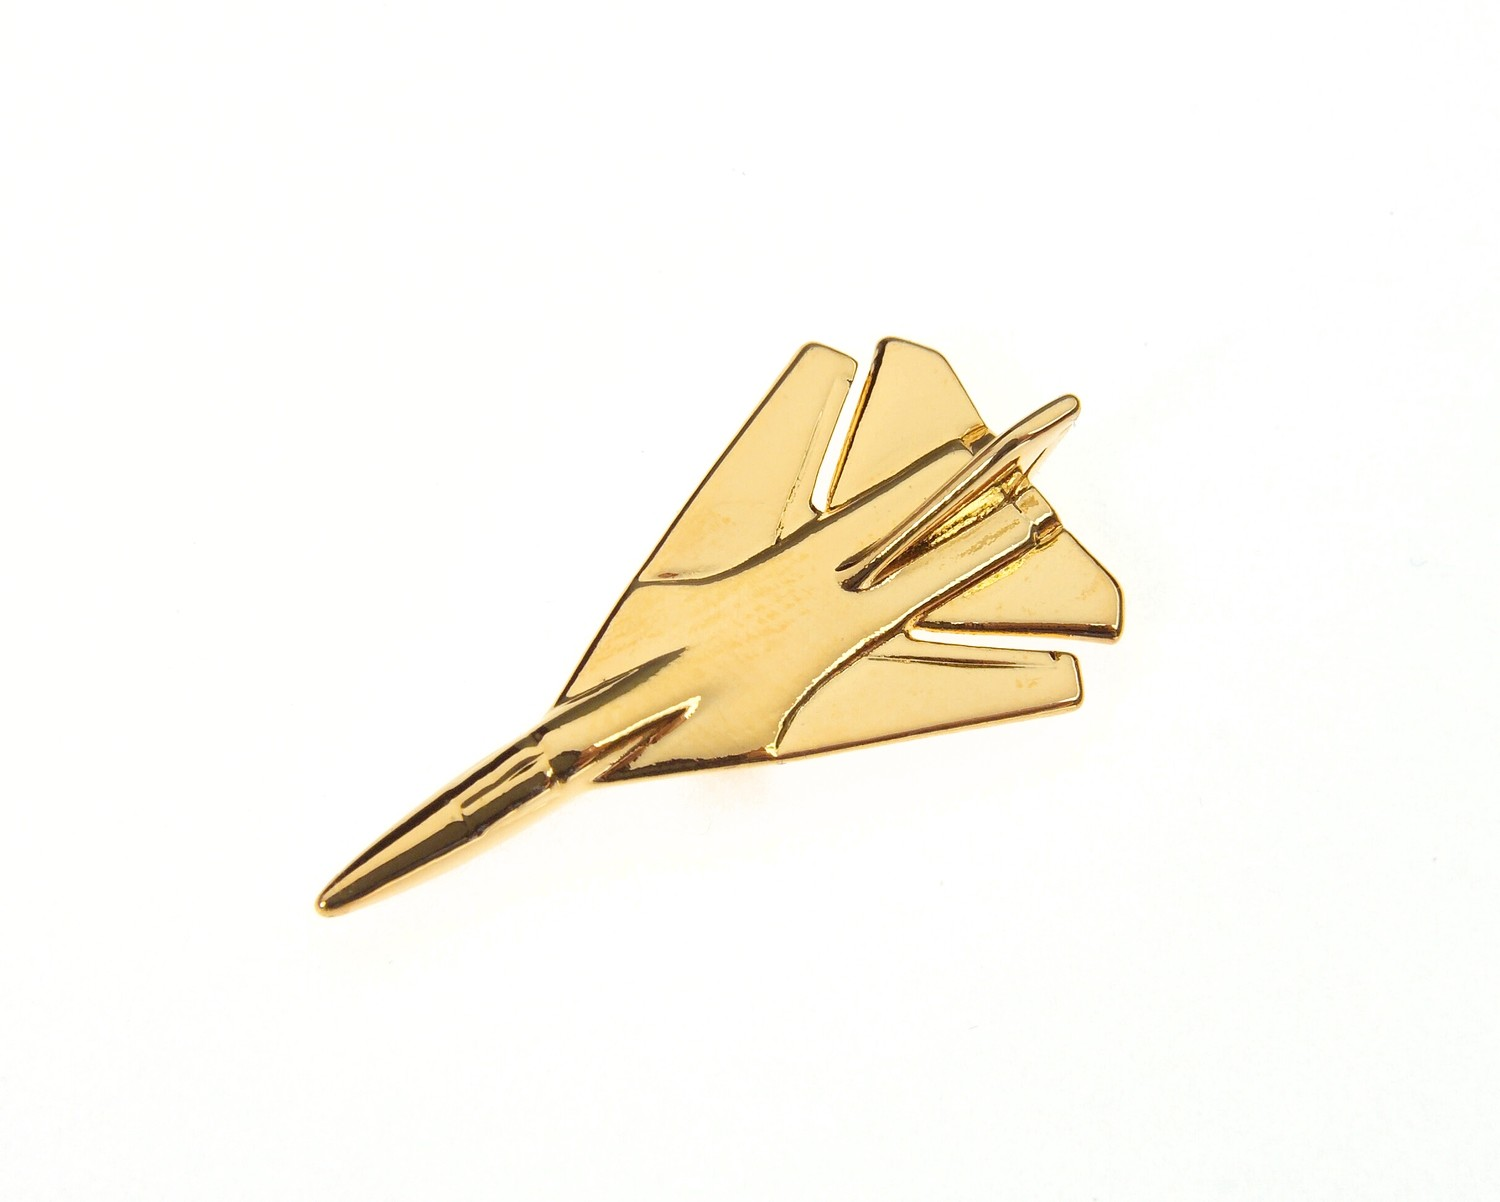 F111 Gold Plated Tie / Lapel Pin